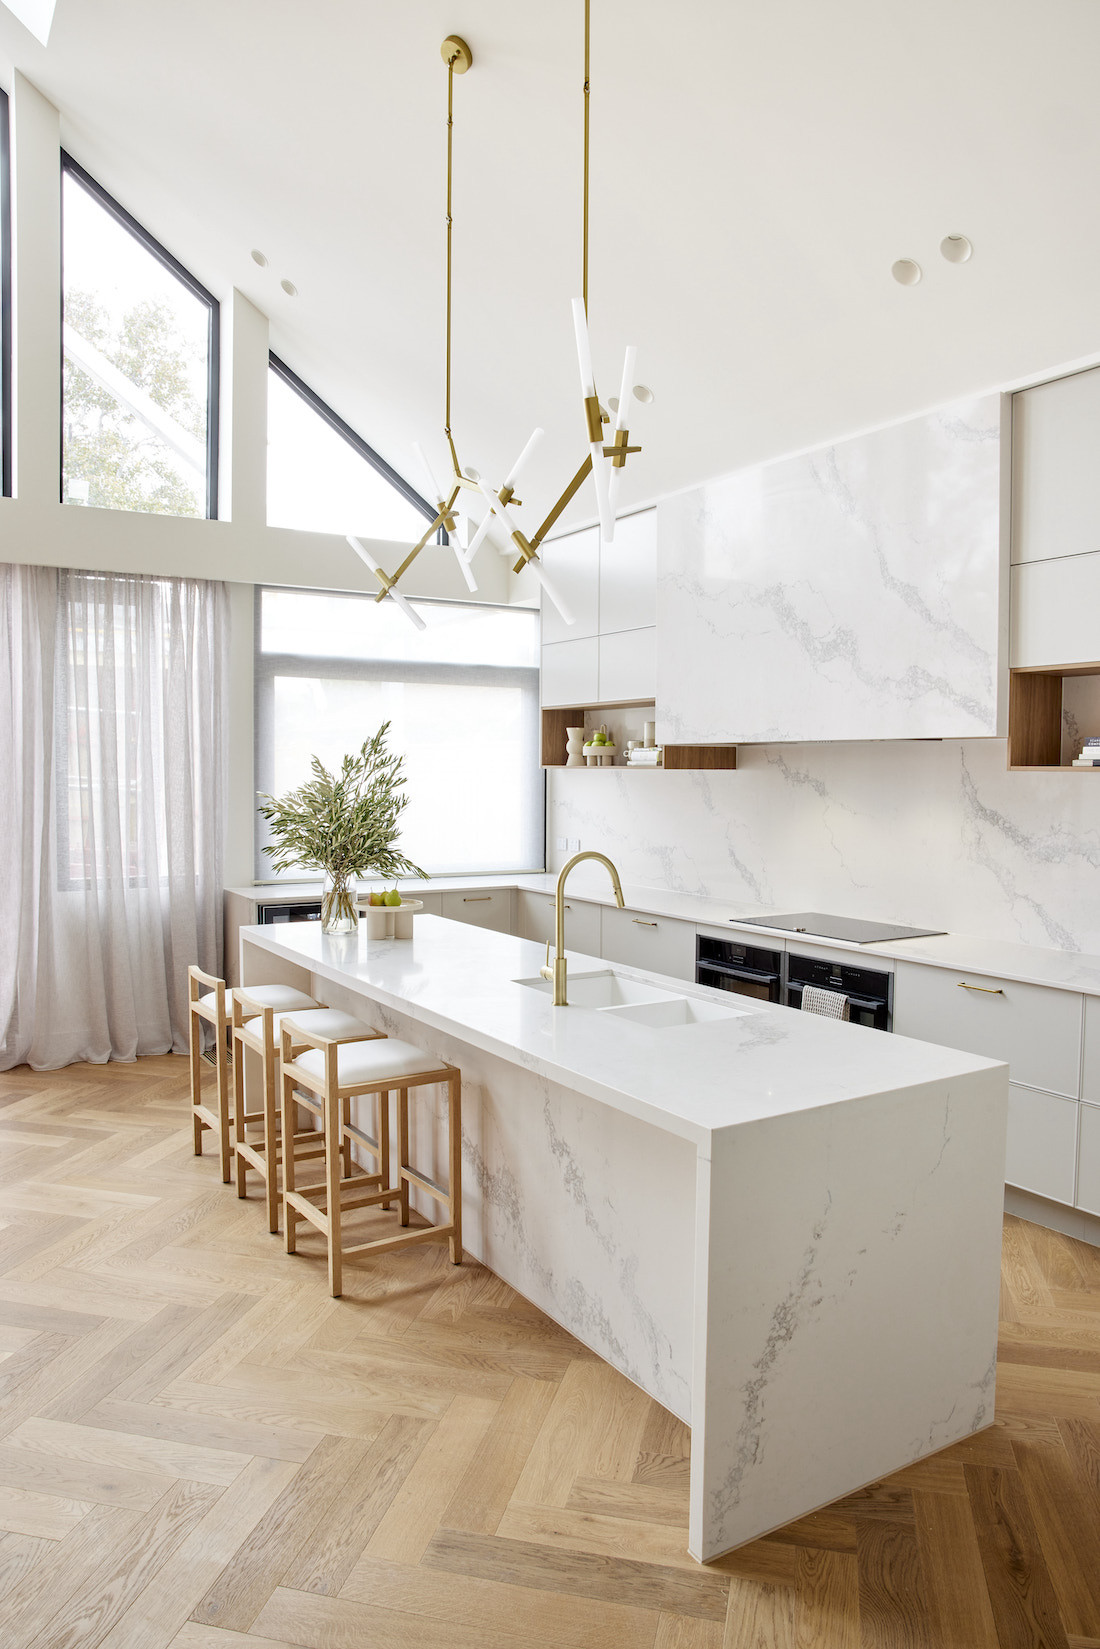 Pitched roof in white stone ceiling